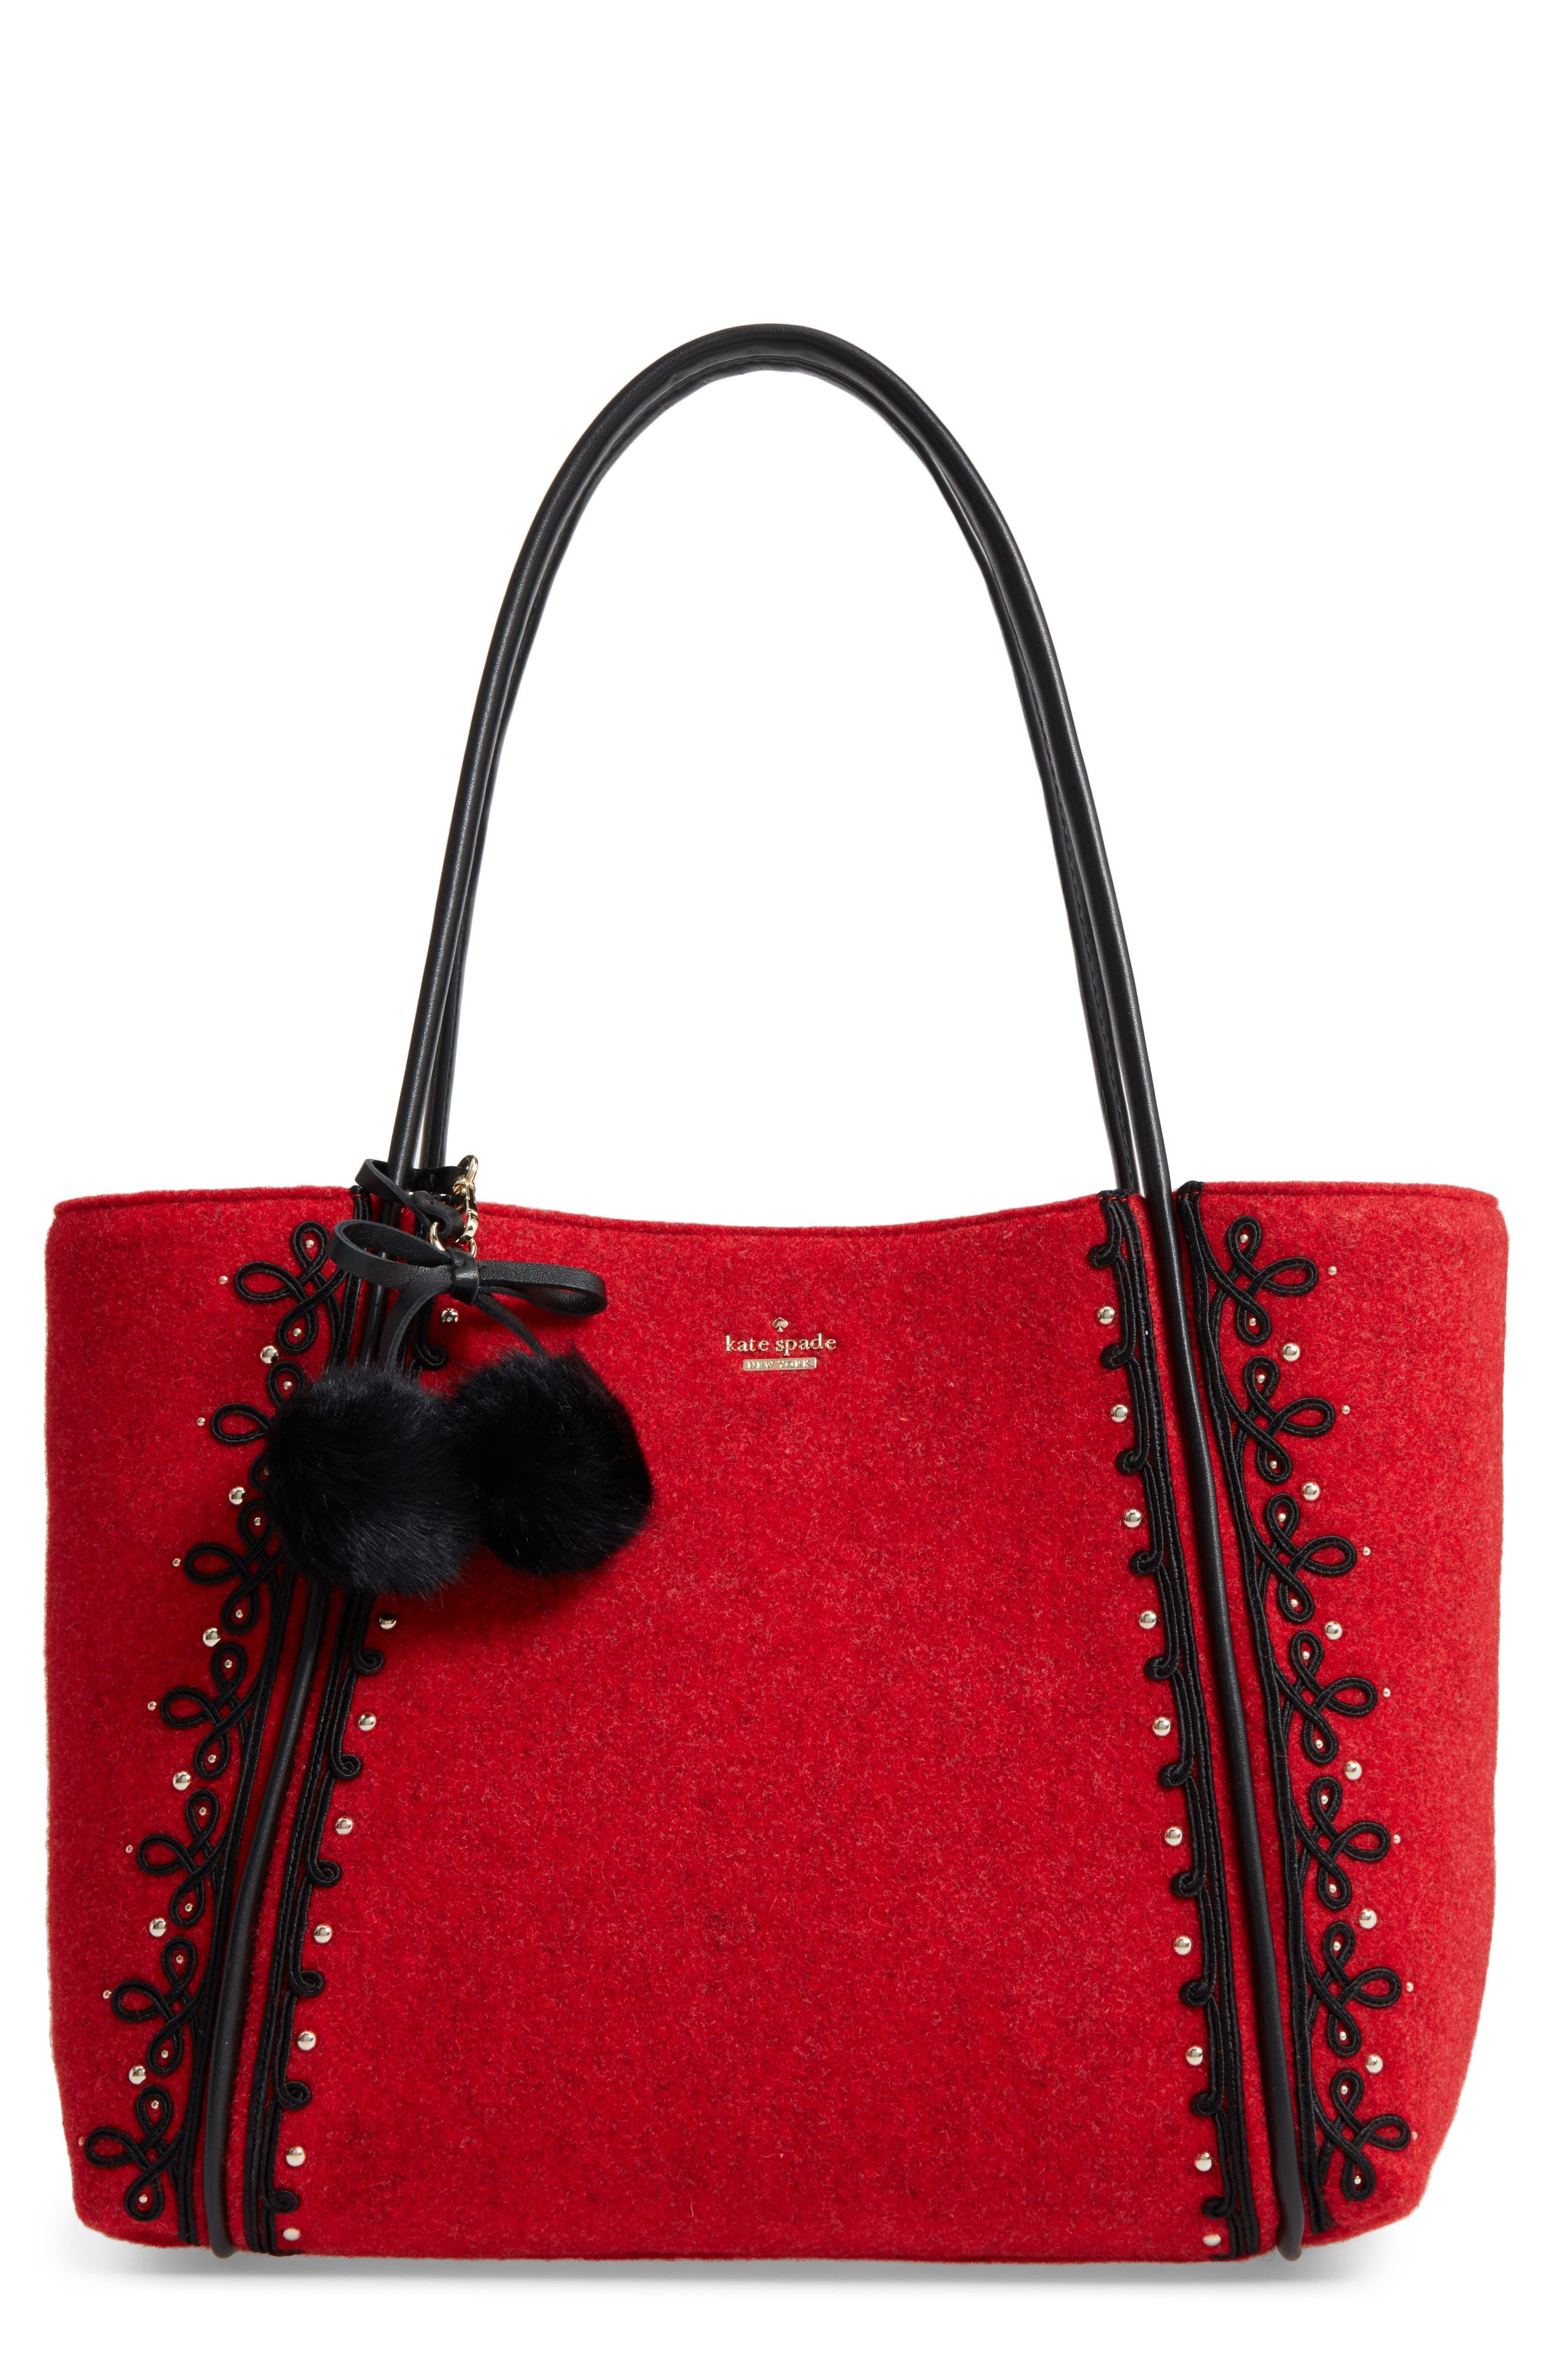 byrne street - ronan wool tote,                             Main thumbnail 1, color,                             Red Carpet